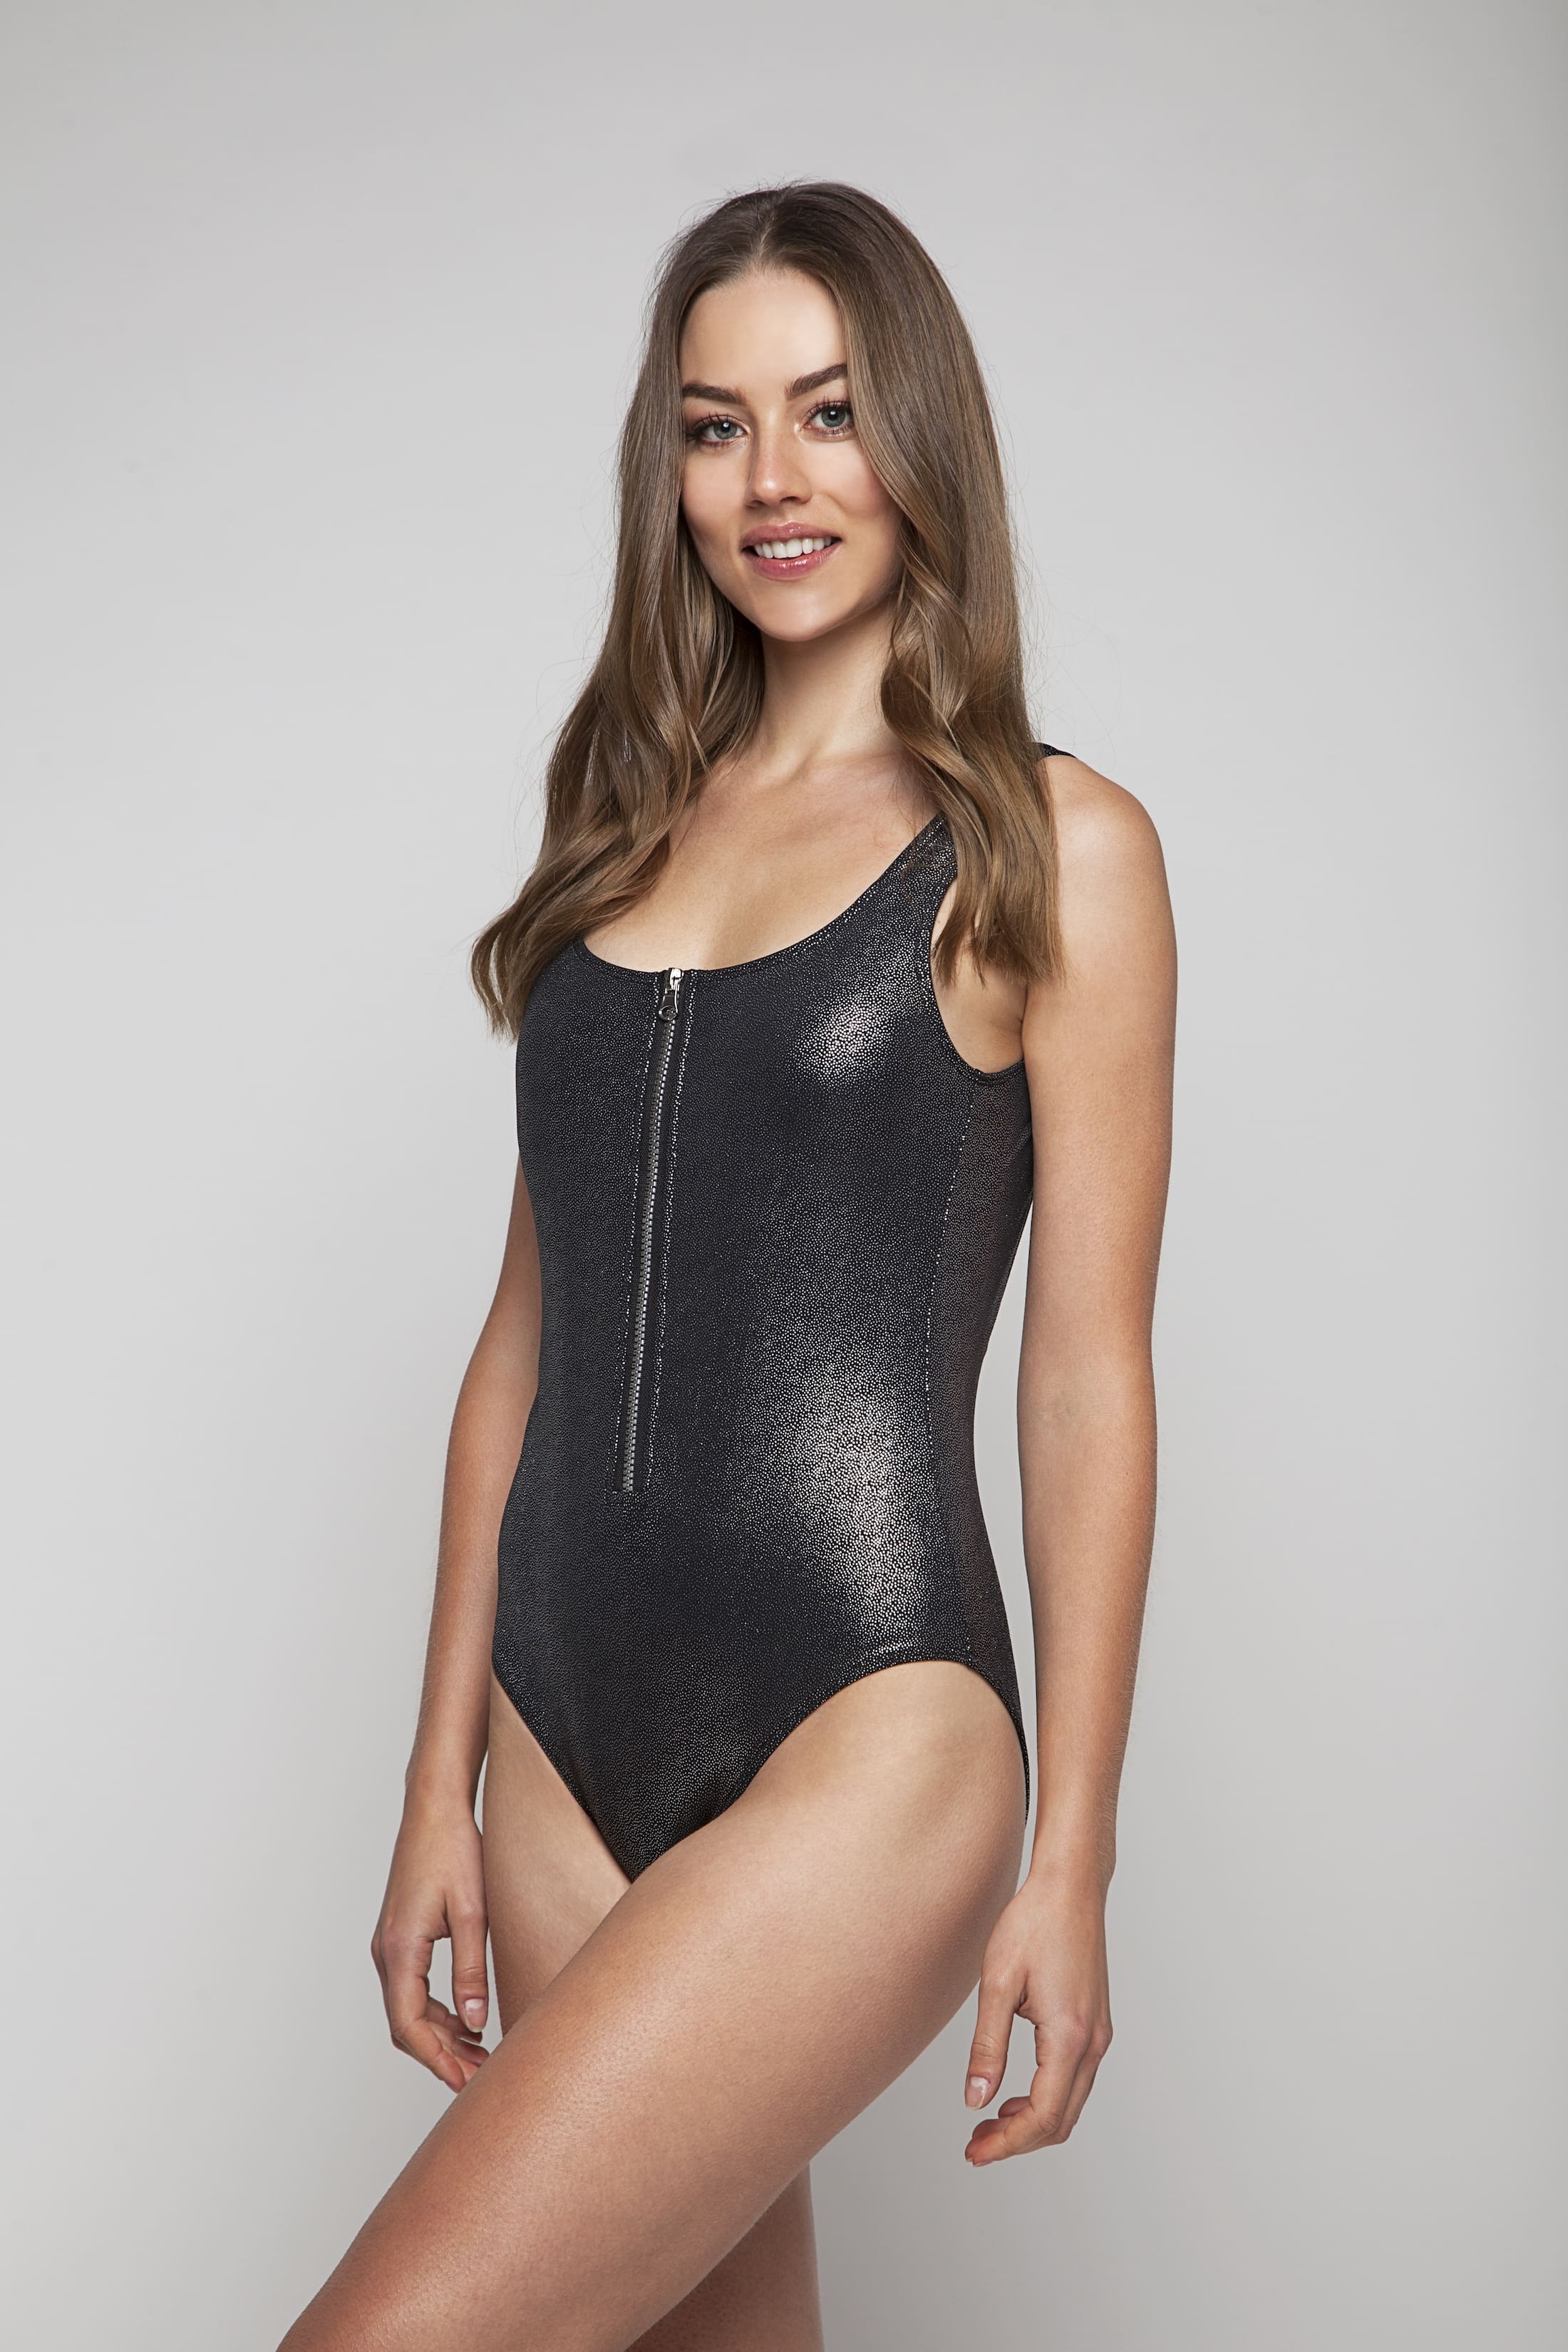 Silver swimsuit with zipper